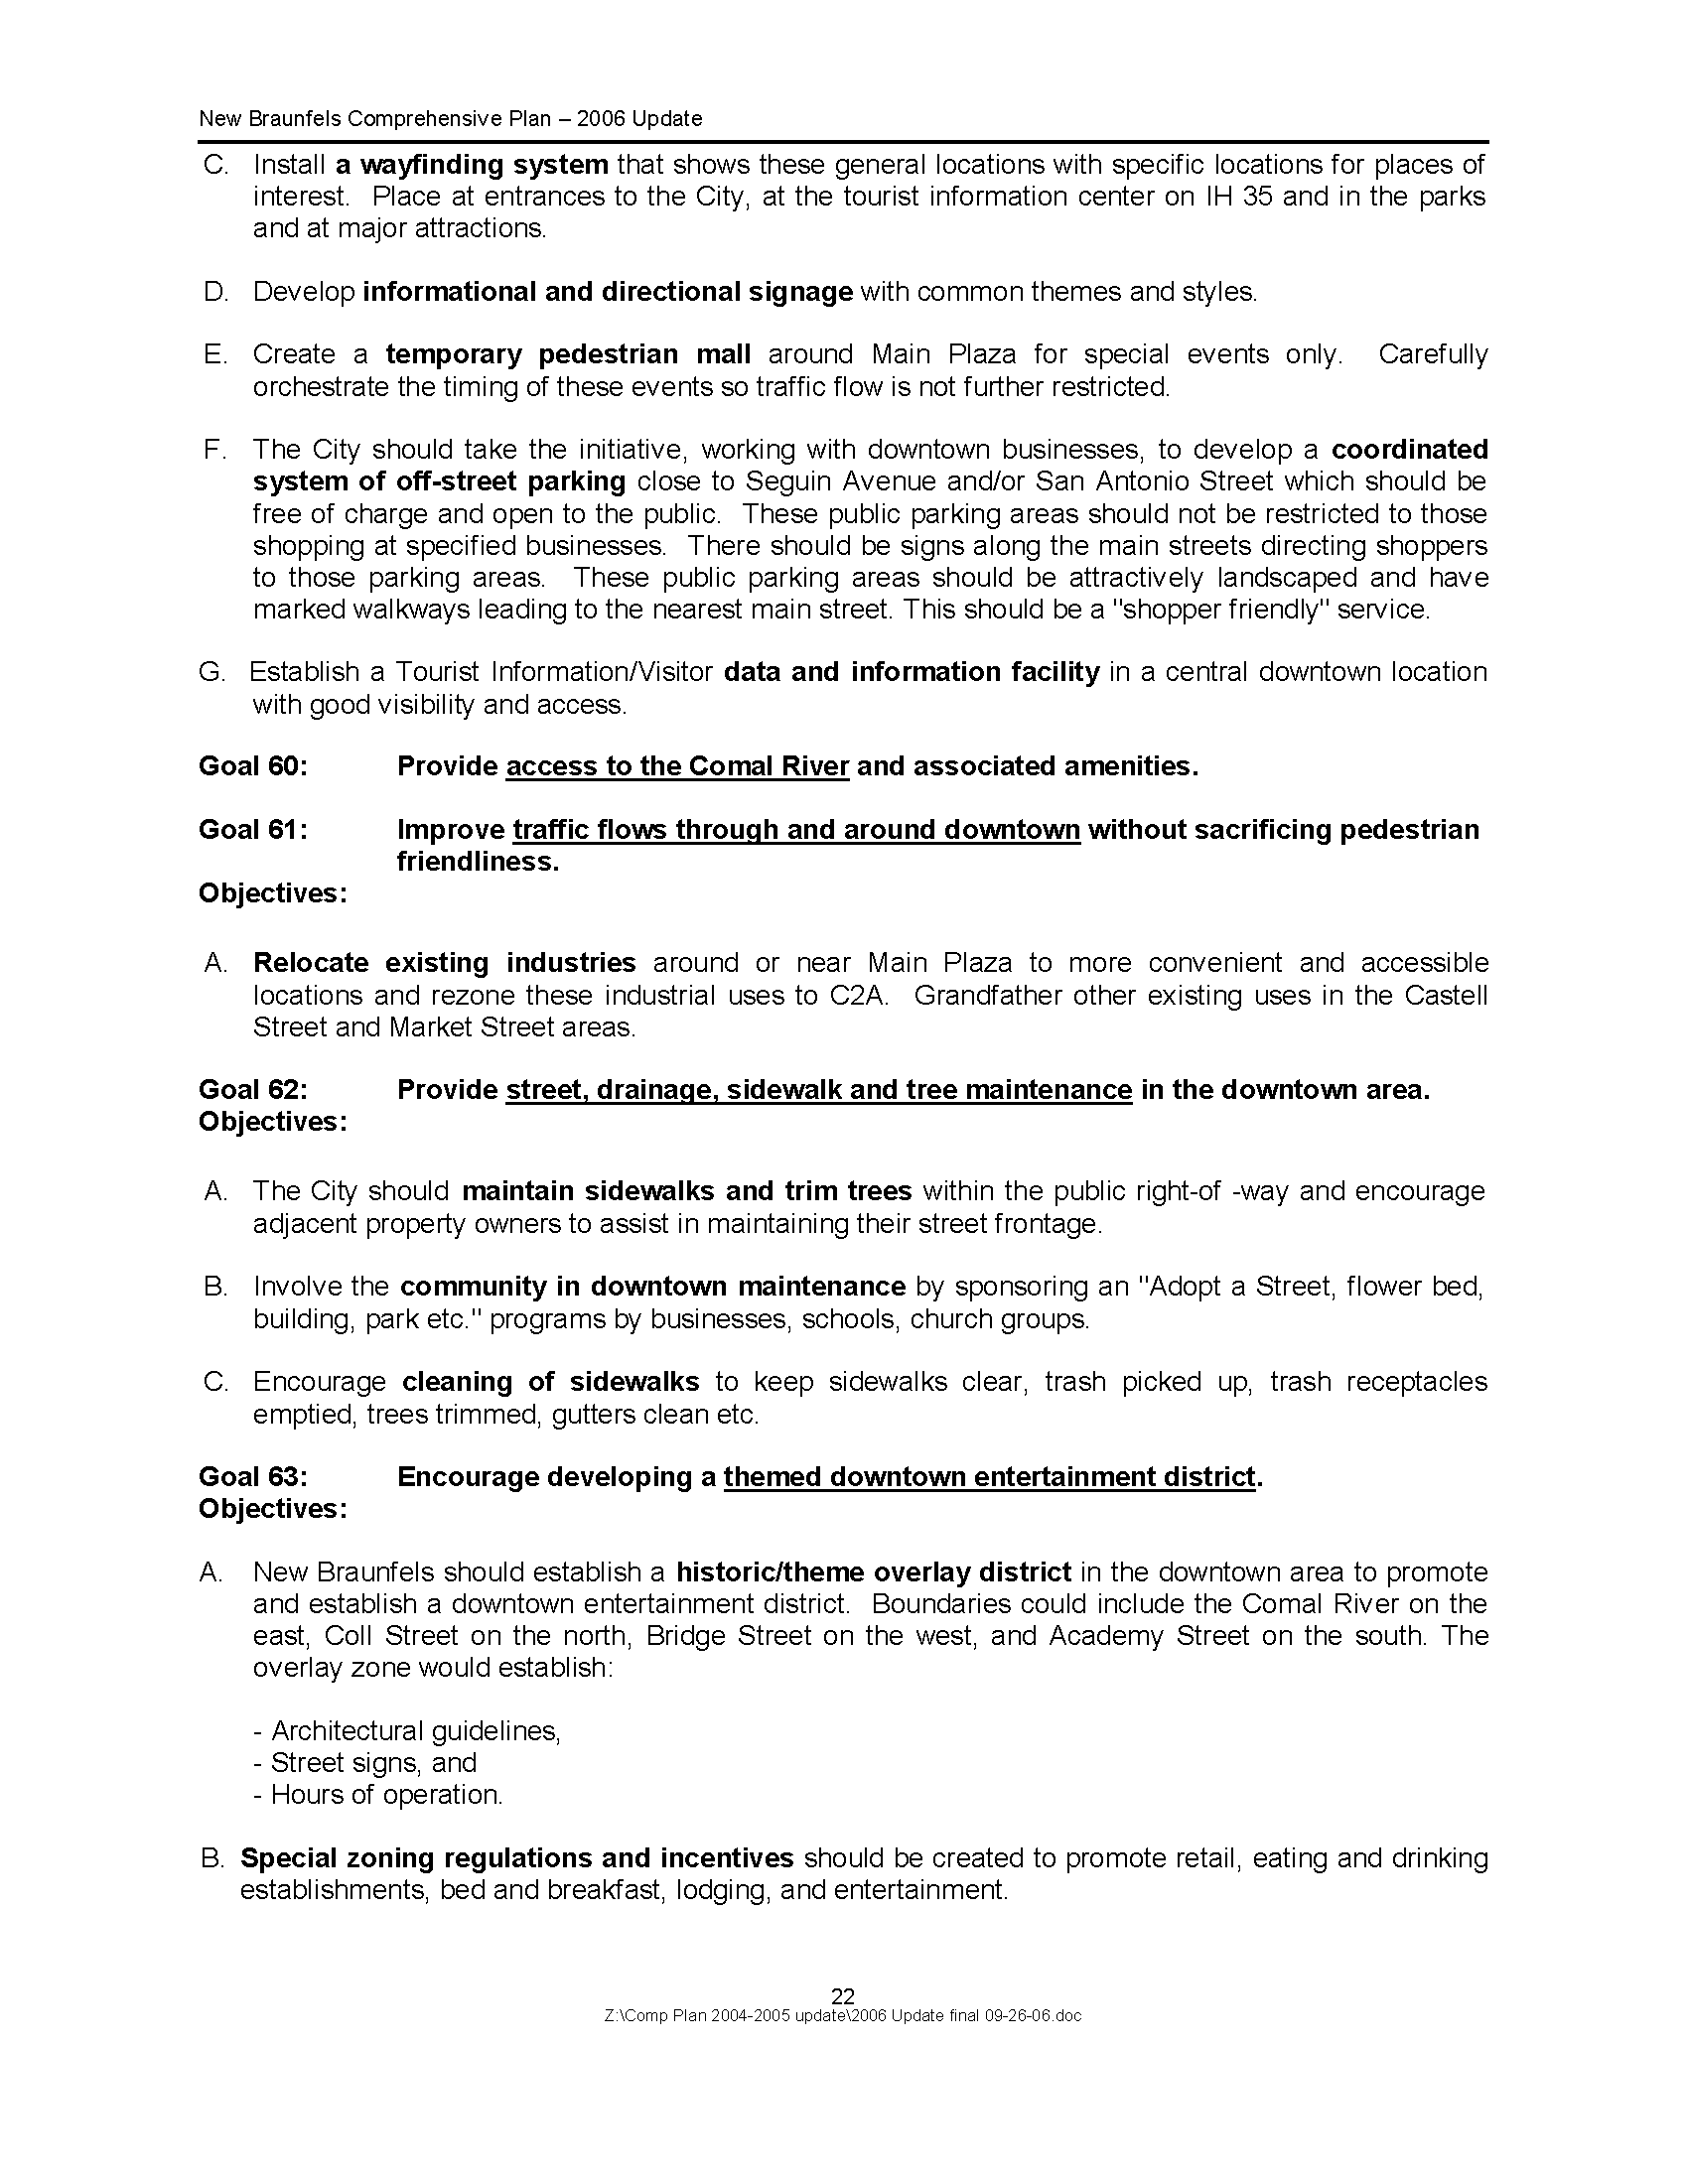 Goals + Objectives_Page_22.png